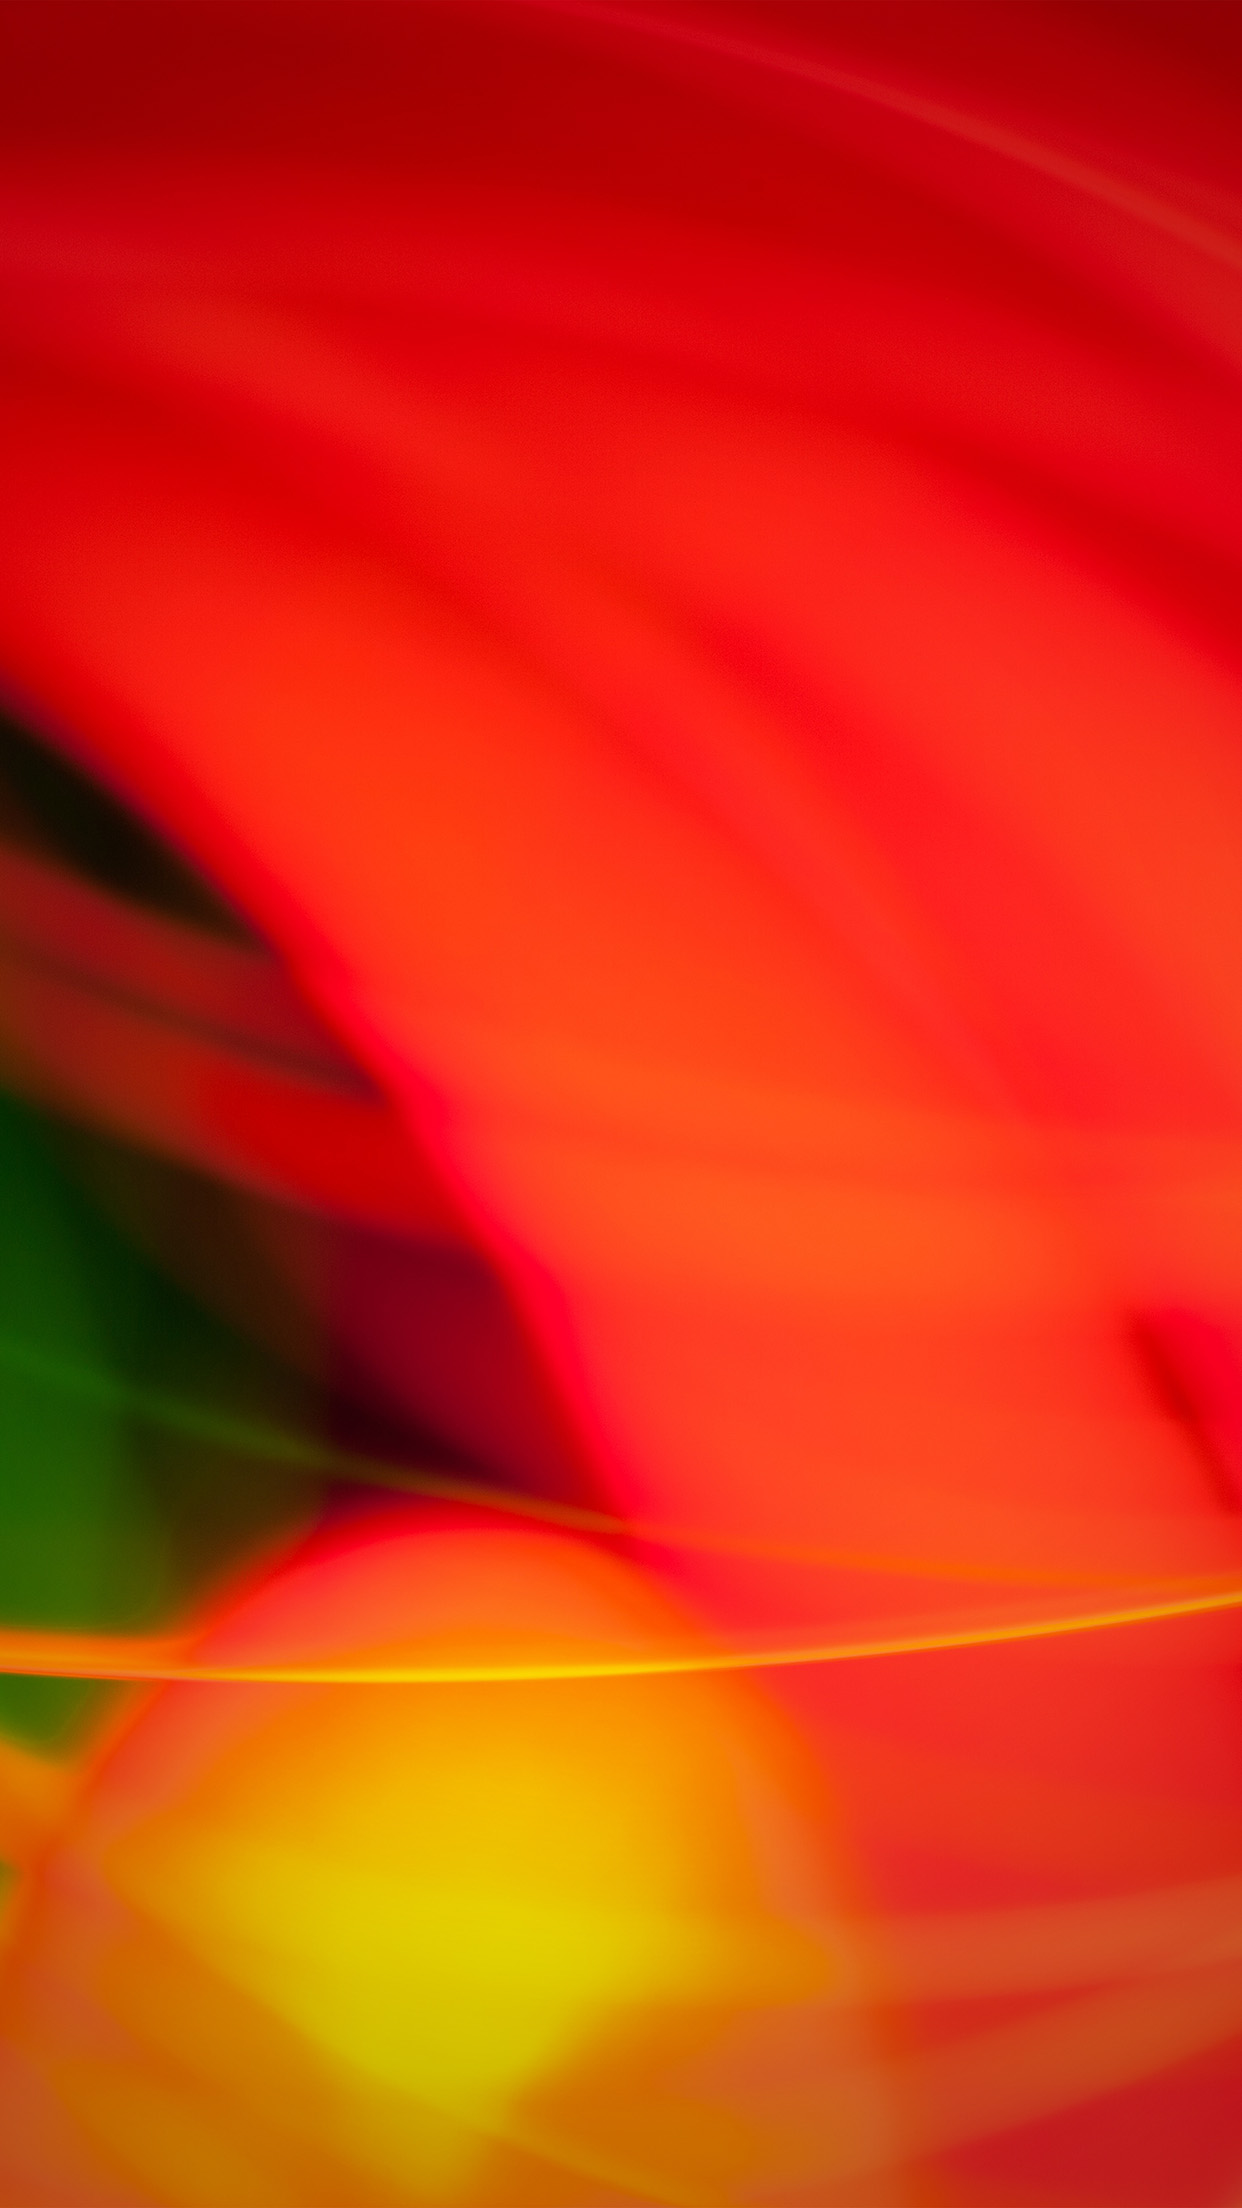 Flare Fire Red Abstract Pattern Hot Android wallpaper